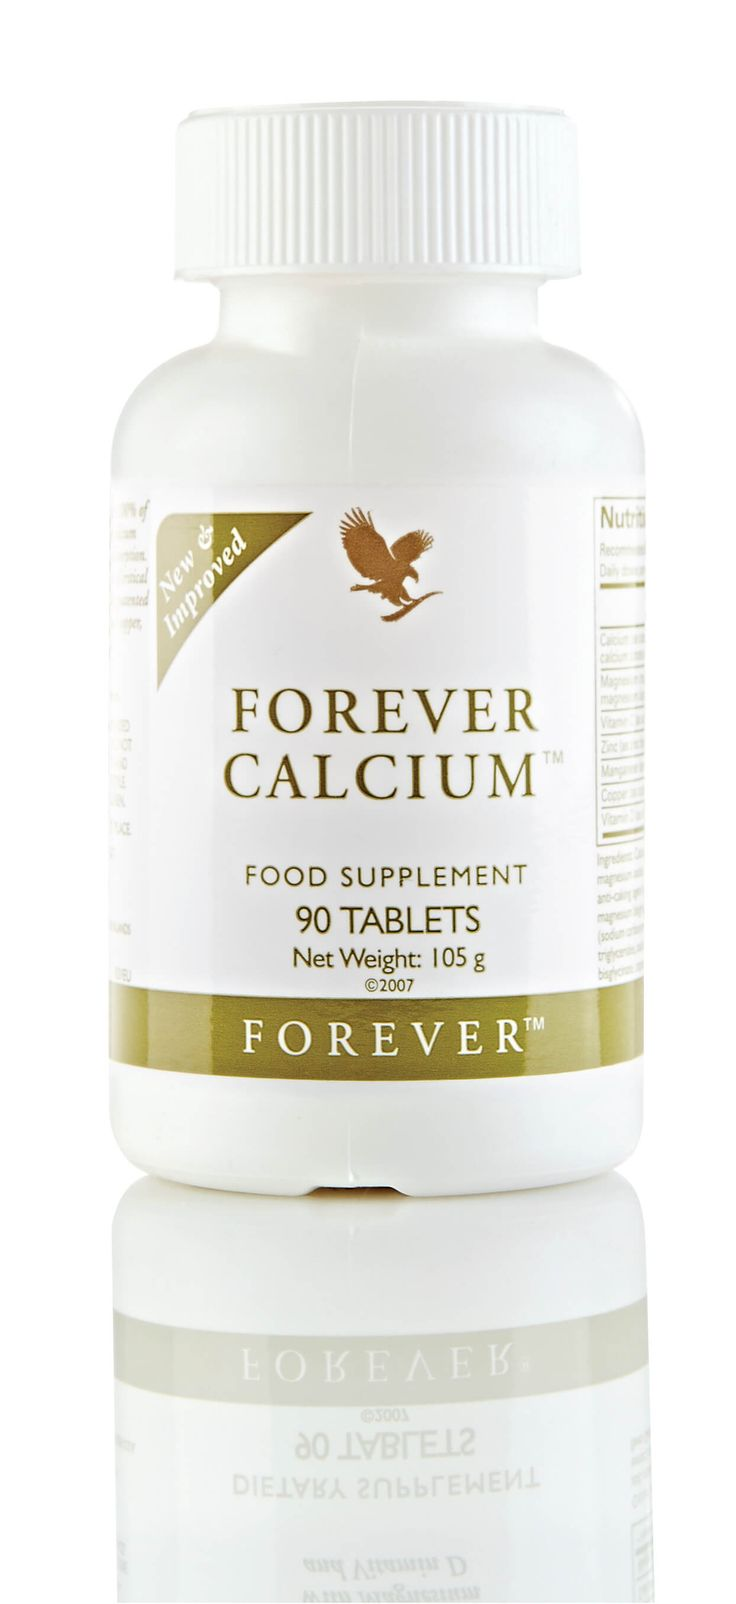 Calcium helps with the release of insulin and stabilises and optimises various enzymes. http://link.flp.social/Jtw0Ag